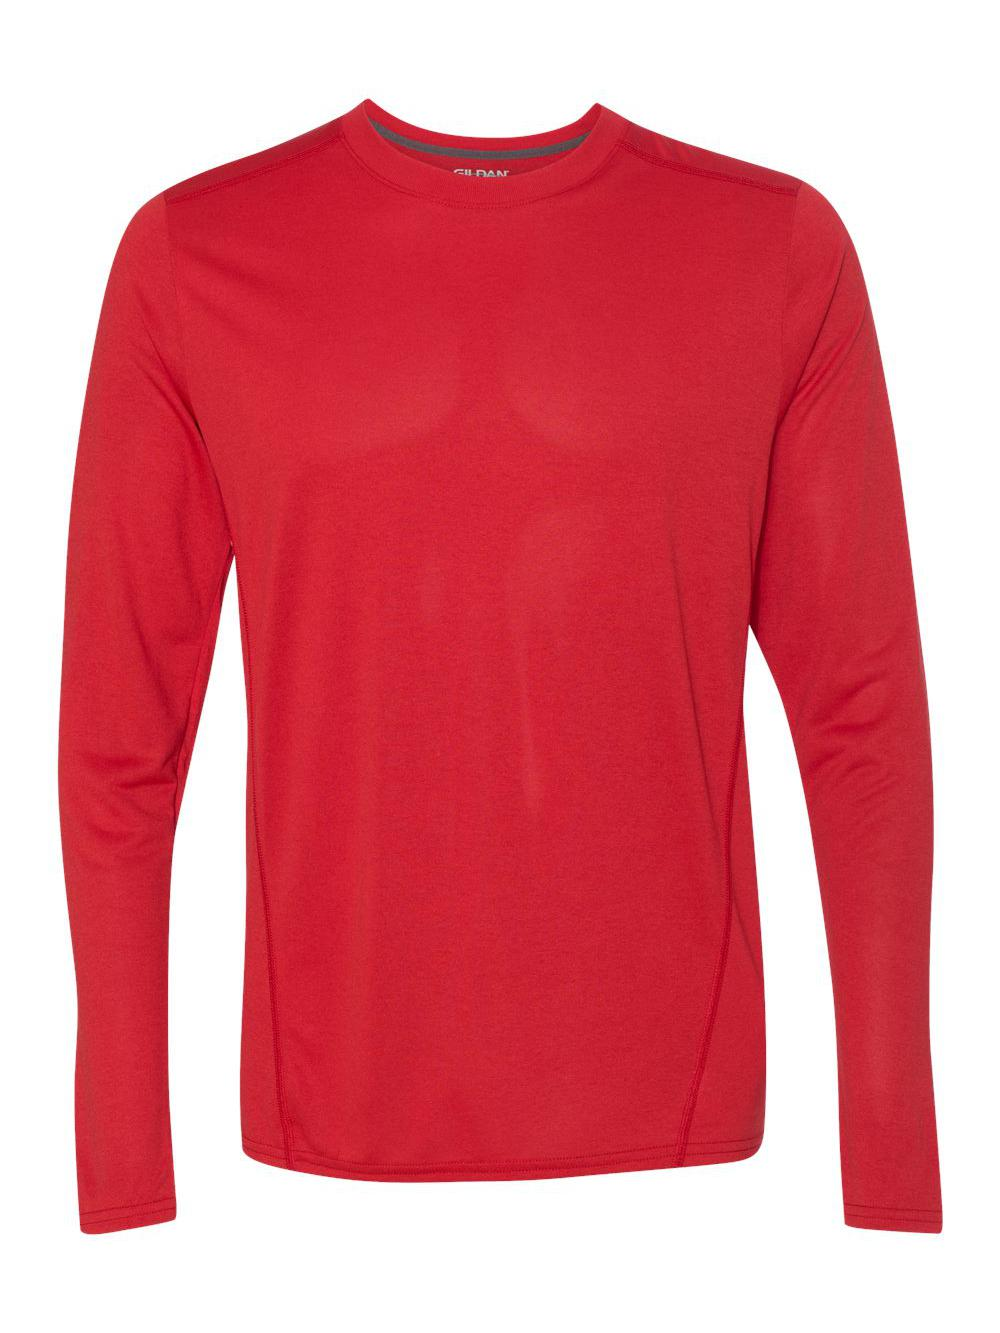 Gildan-Tech-Performance-Long-Sleeve-T-Shirt-47400 thumbnail 21